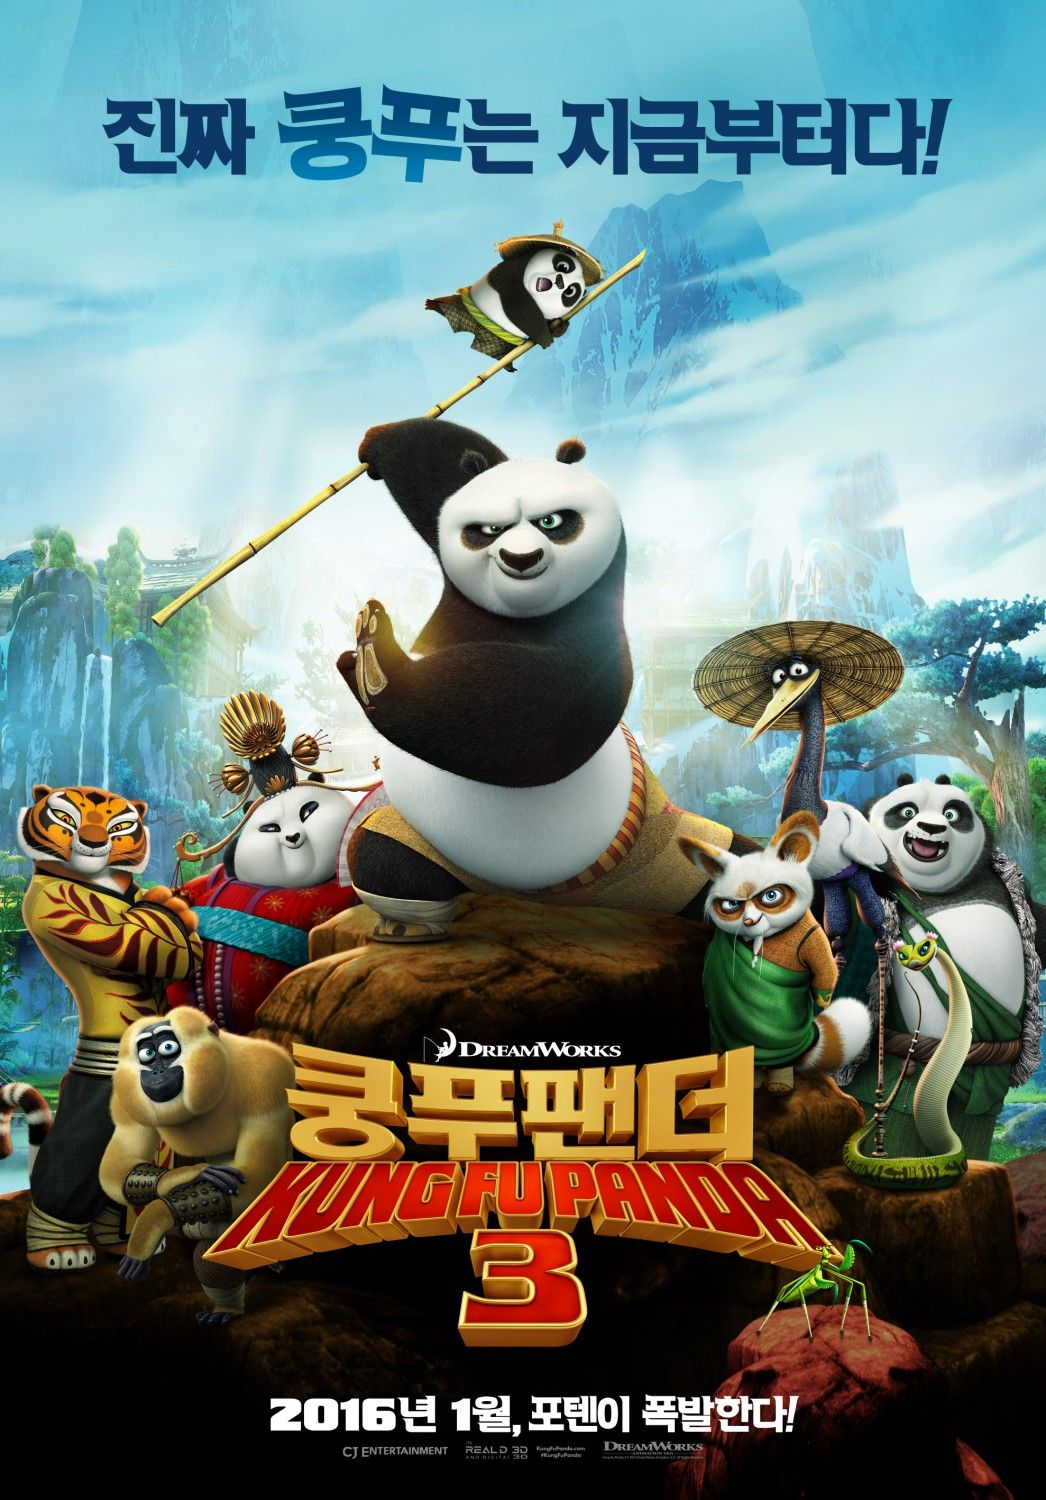 Kung Fu Panda 3 Extra Large Movie Poster Image Internet Movie Poster Awards Gallery Kung Fu Panda 3 Kung Fu Panda Kung Fu